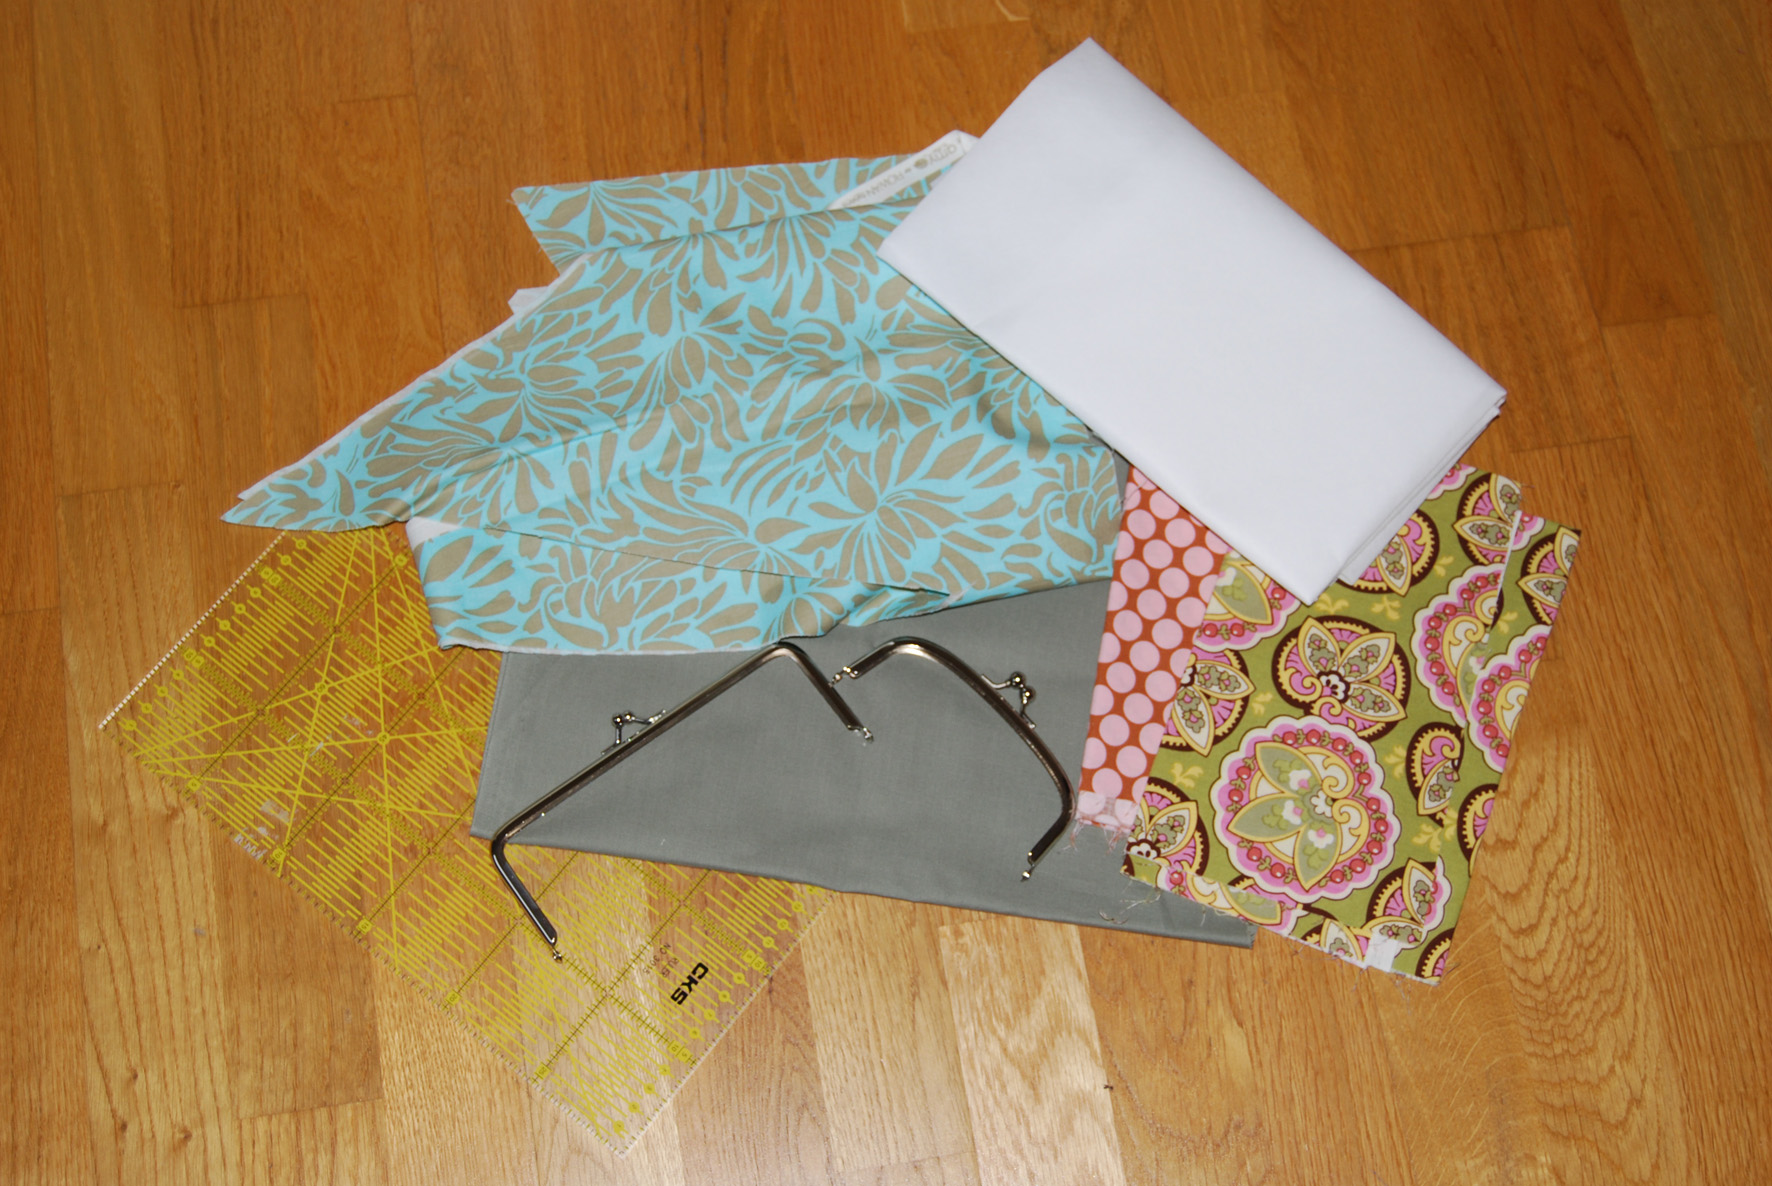 First sewing project in 2010